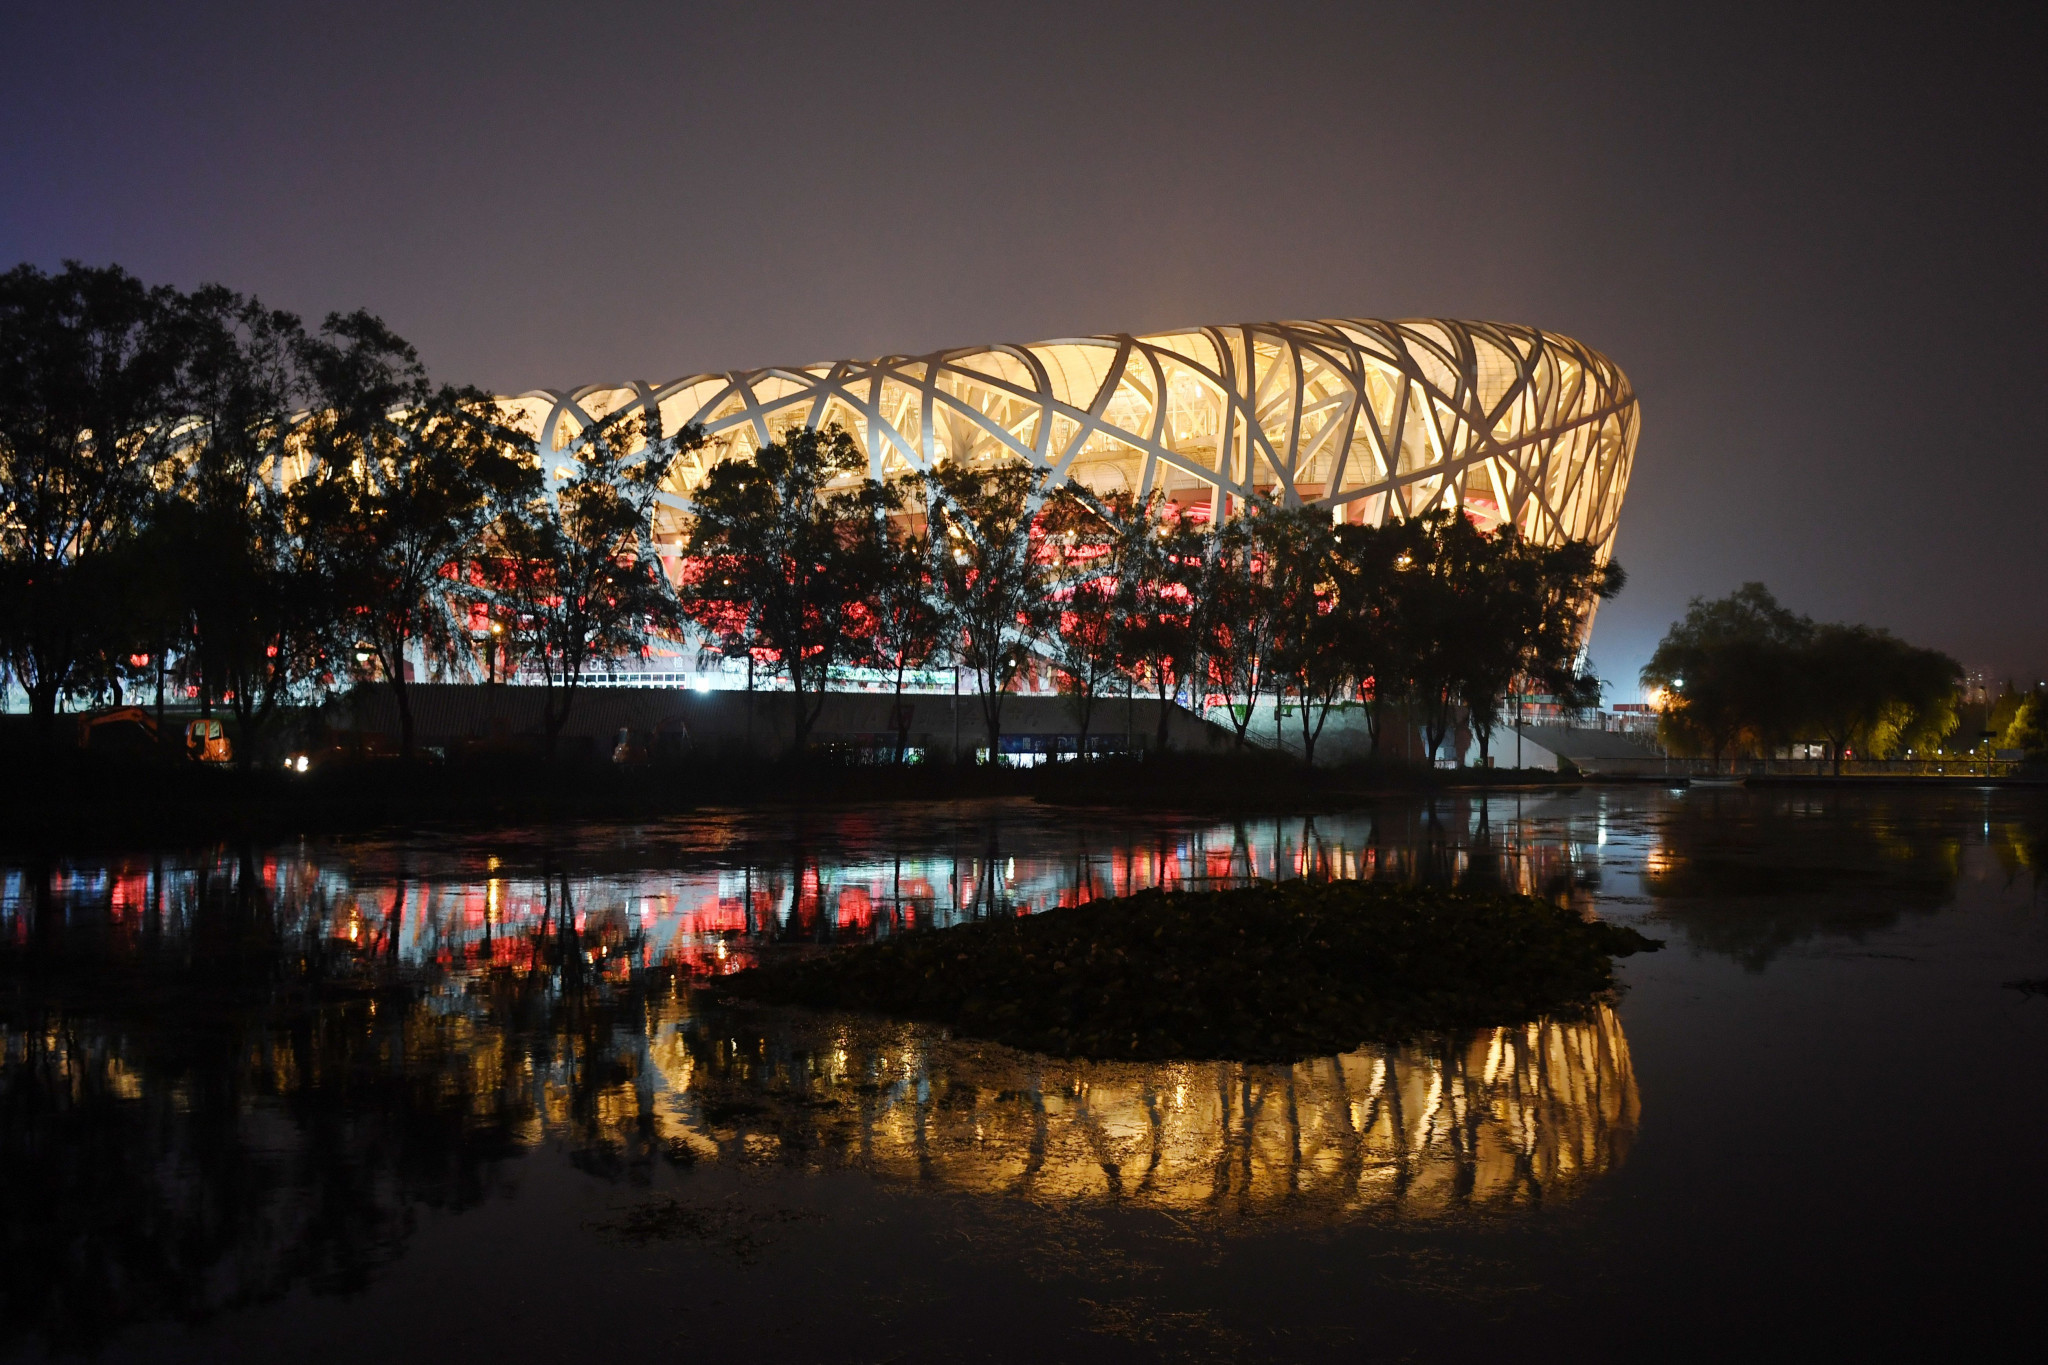 Representatives from the world's leading news agencies visited facilities for Beijing 2020 such as the National Stadium ©Getty Images